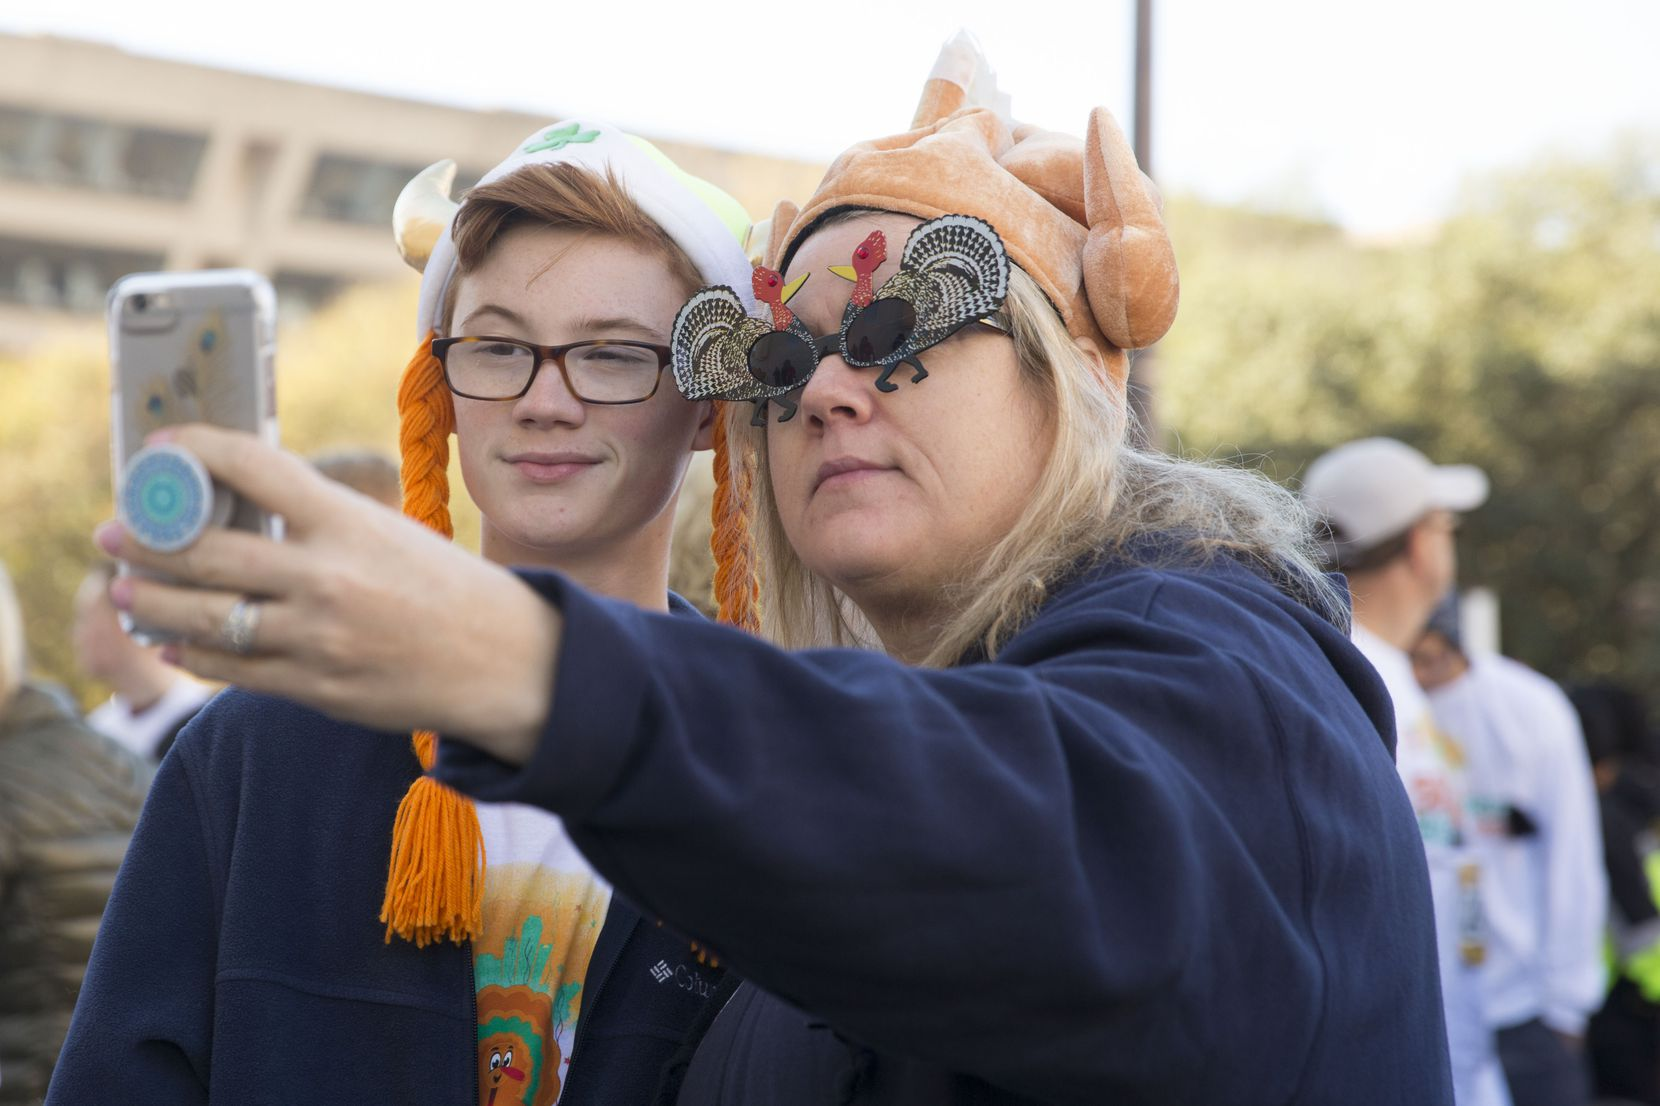 Stacie Collins (right) and nephew Colin Sumrall take a selfie before the Dallas YMCA Turkey Trot, held annually on Thanksgiving.